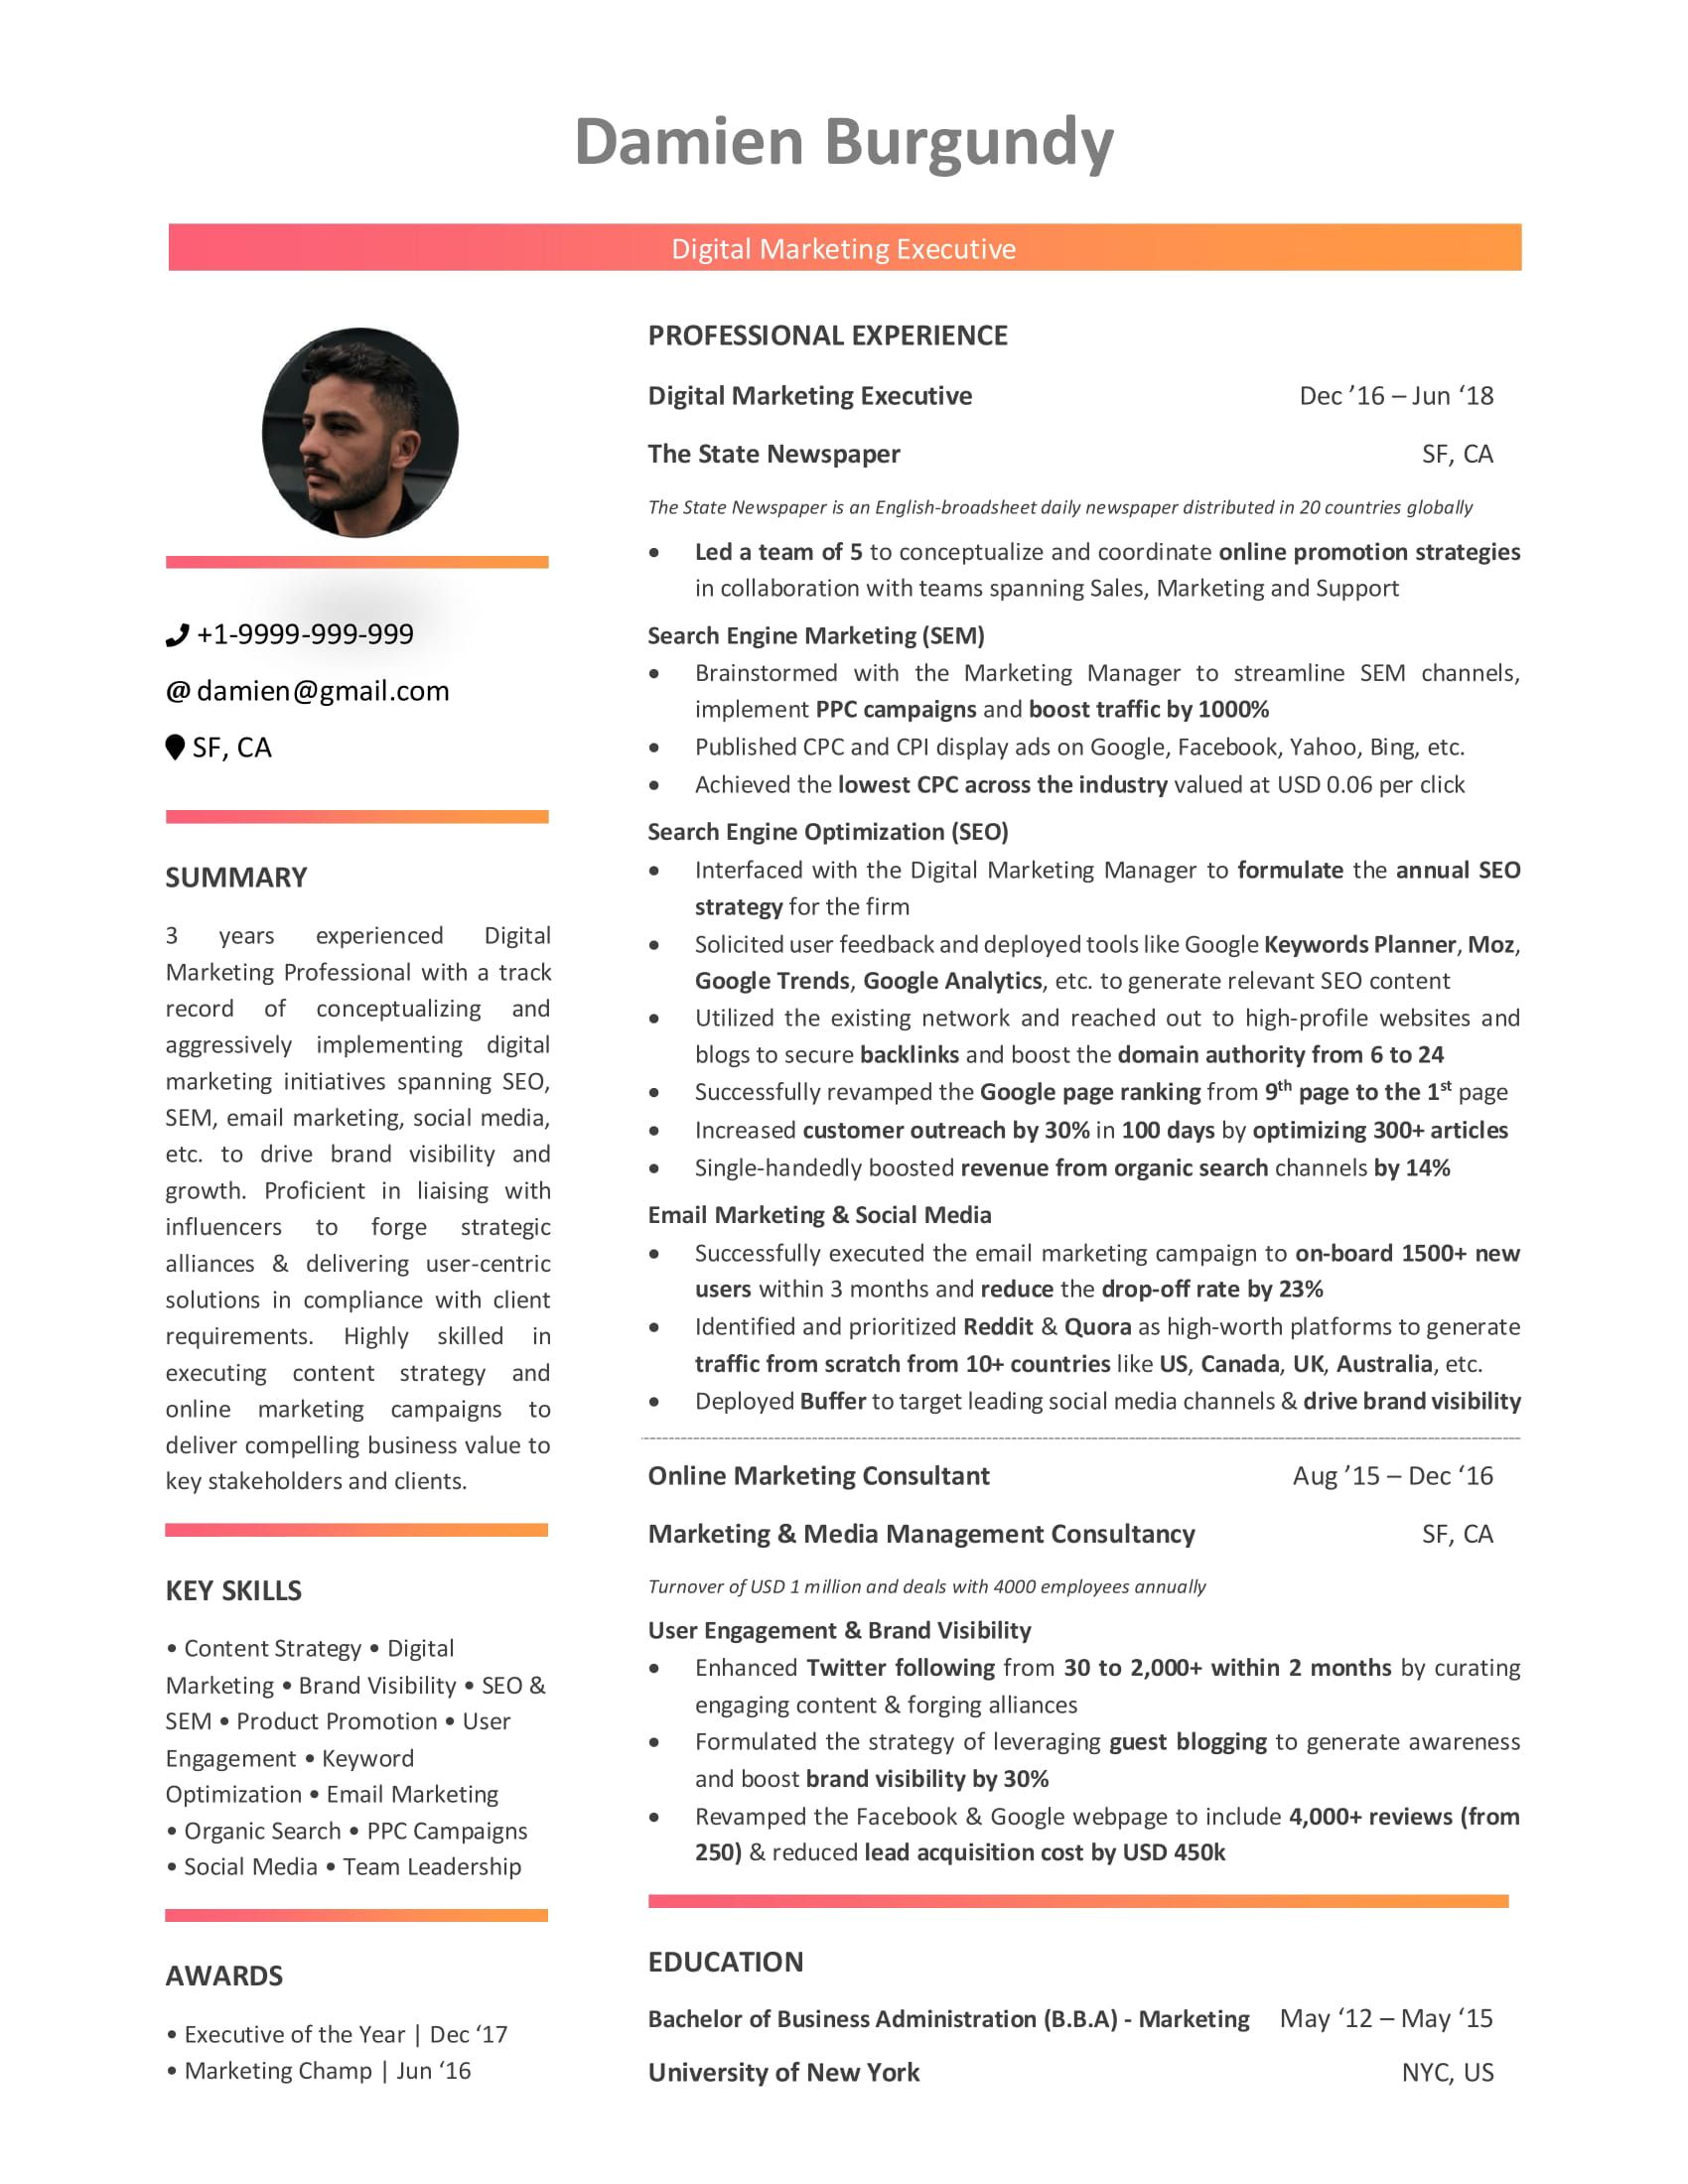 digital marketing resume guide with samples and examples best format for fresher disney Resume Best Resume Format For Digital Marketing Fresher